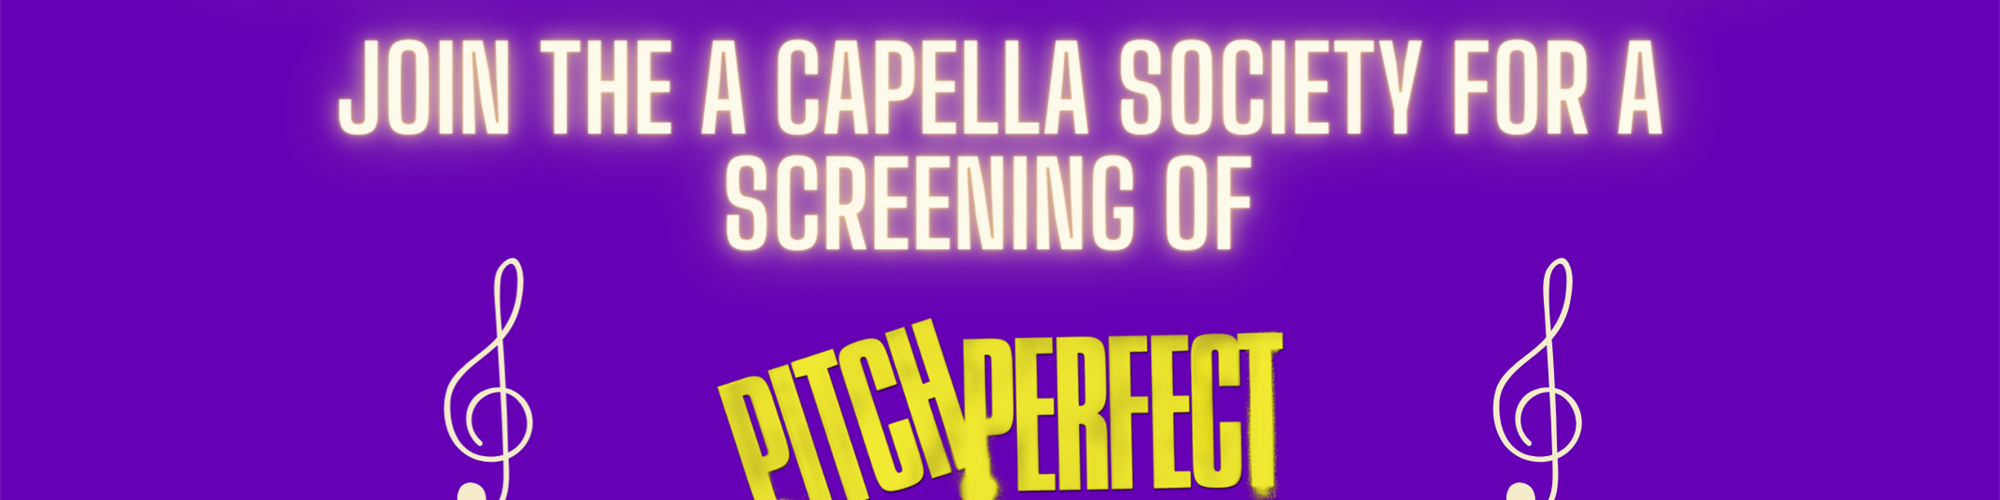 A Capella Society's Pitch Perfect Screening!